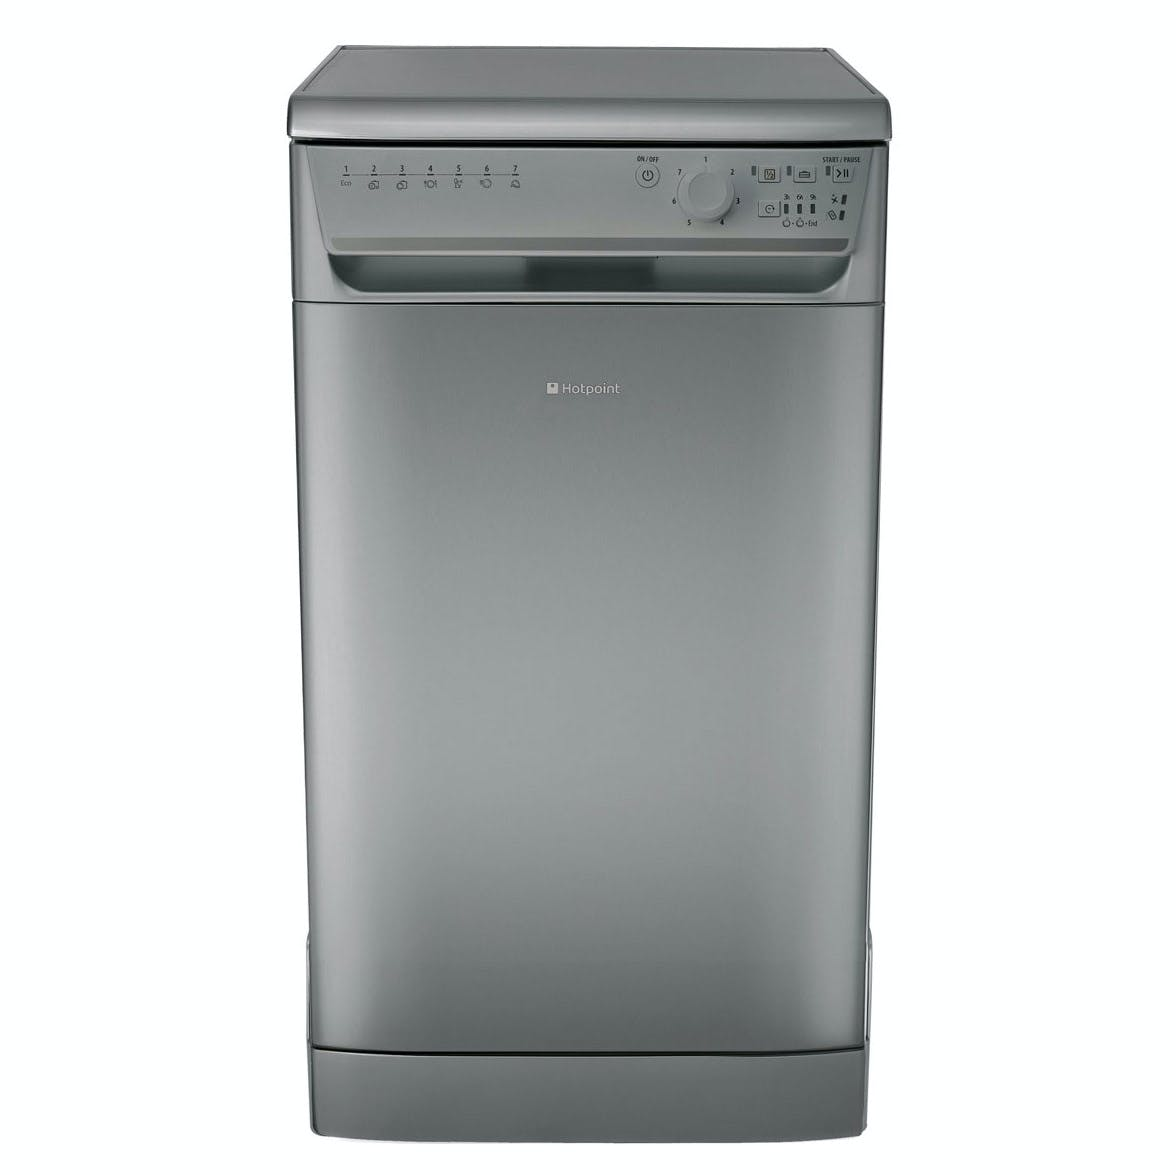 hotpoint sial11010g 45cm aquarius slimline dishwasher in graphite a aa. Black Bedroom Furniture Sets. Home Design Ideas